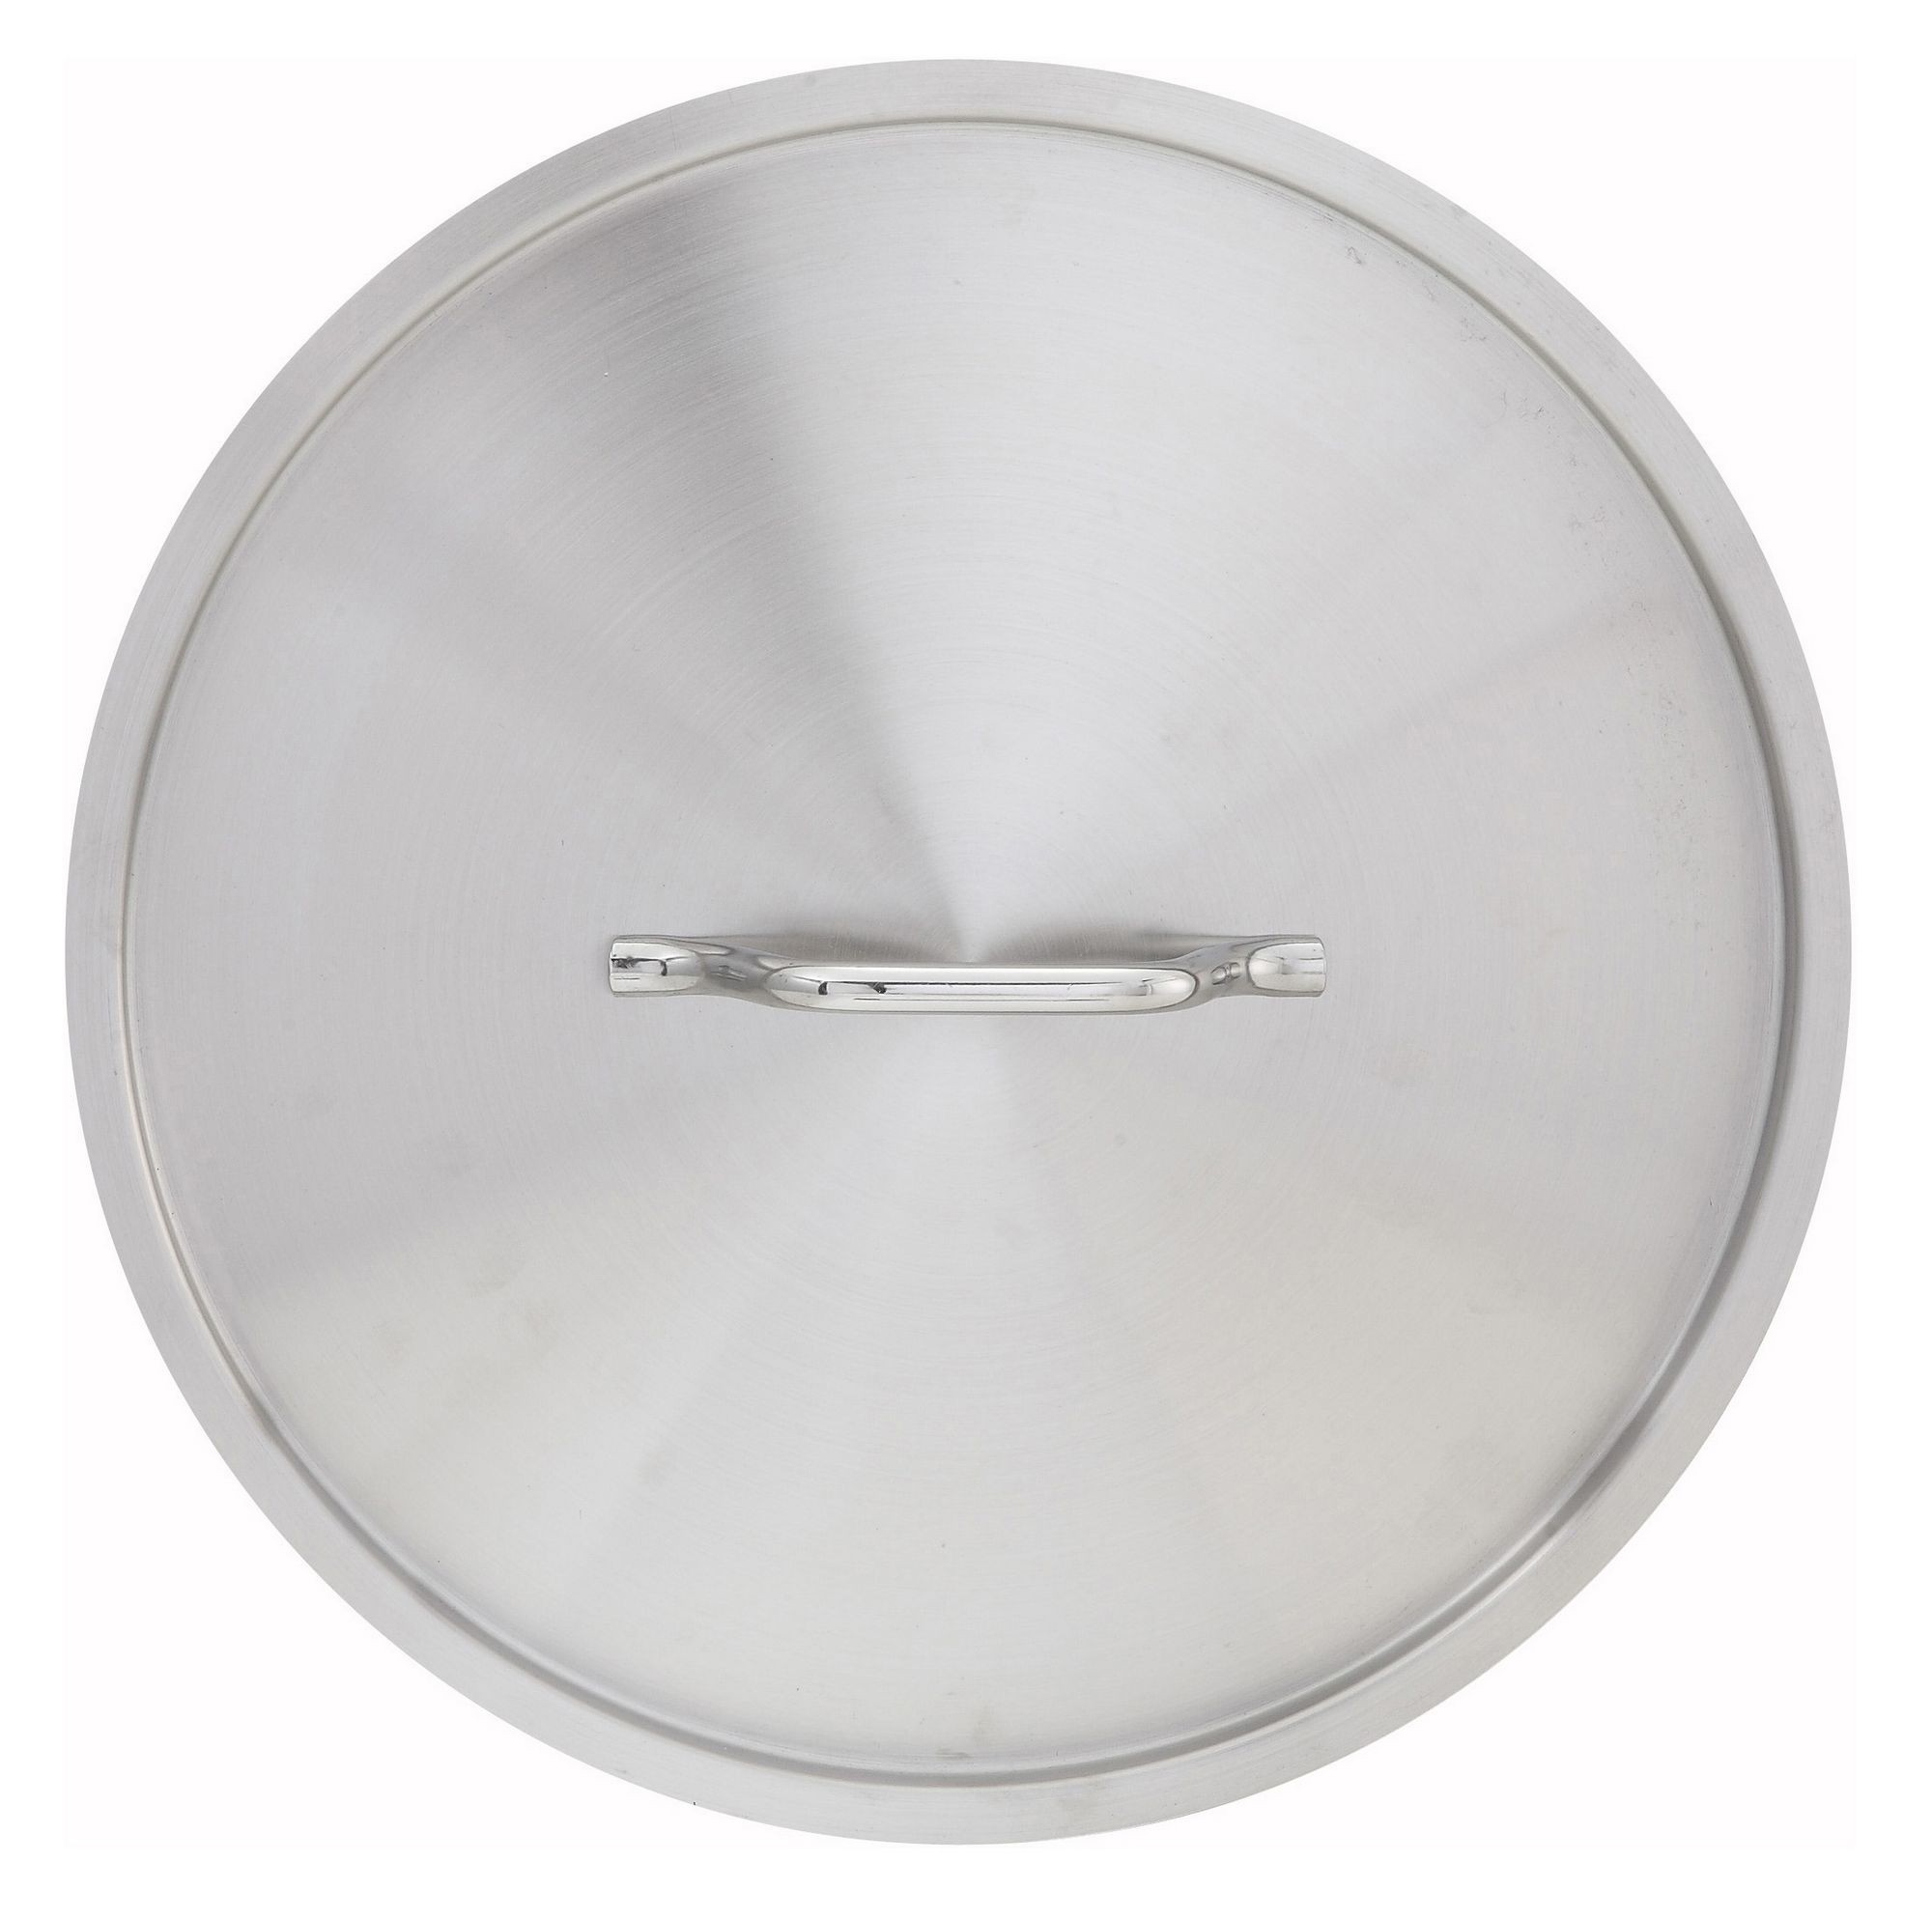 Winco SSTC-8 Stainless Steel Cover for SST-8 SSFP-9 SSFP-9NS